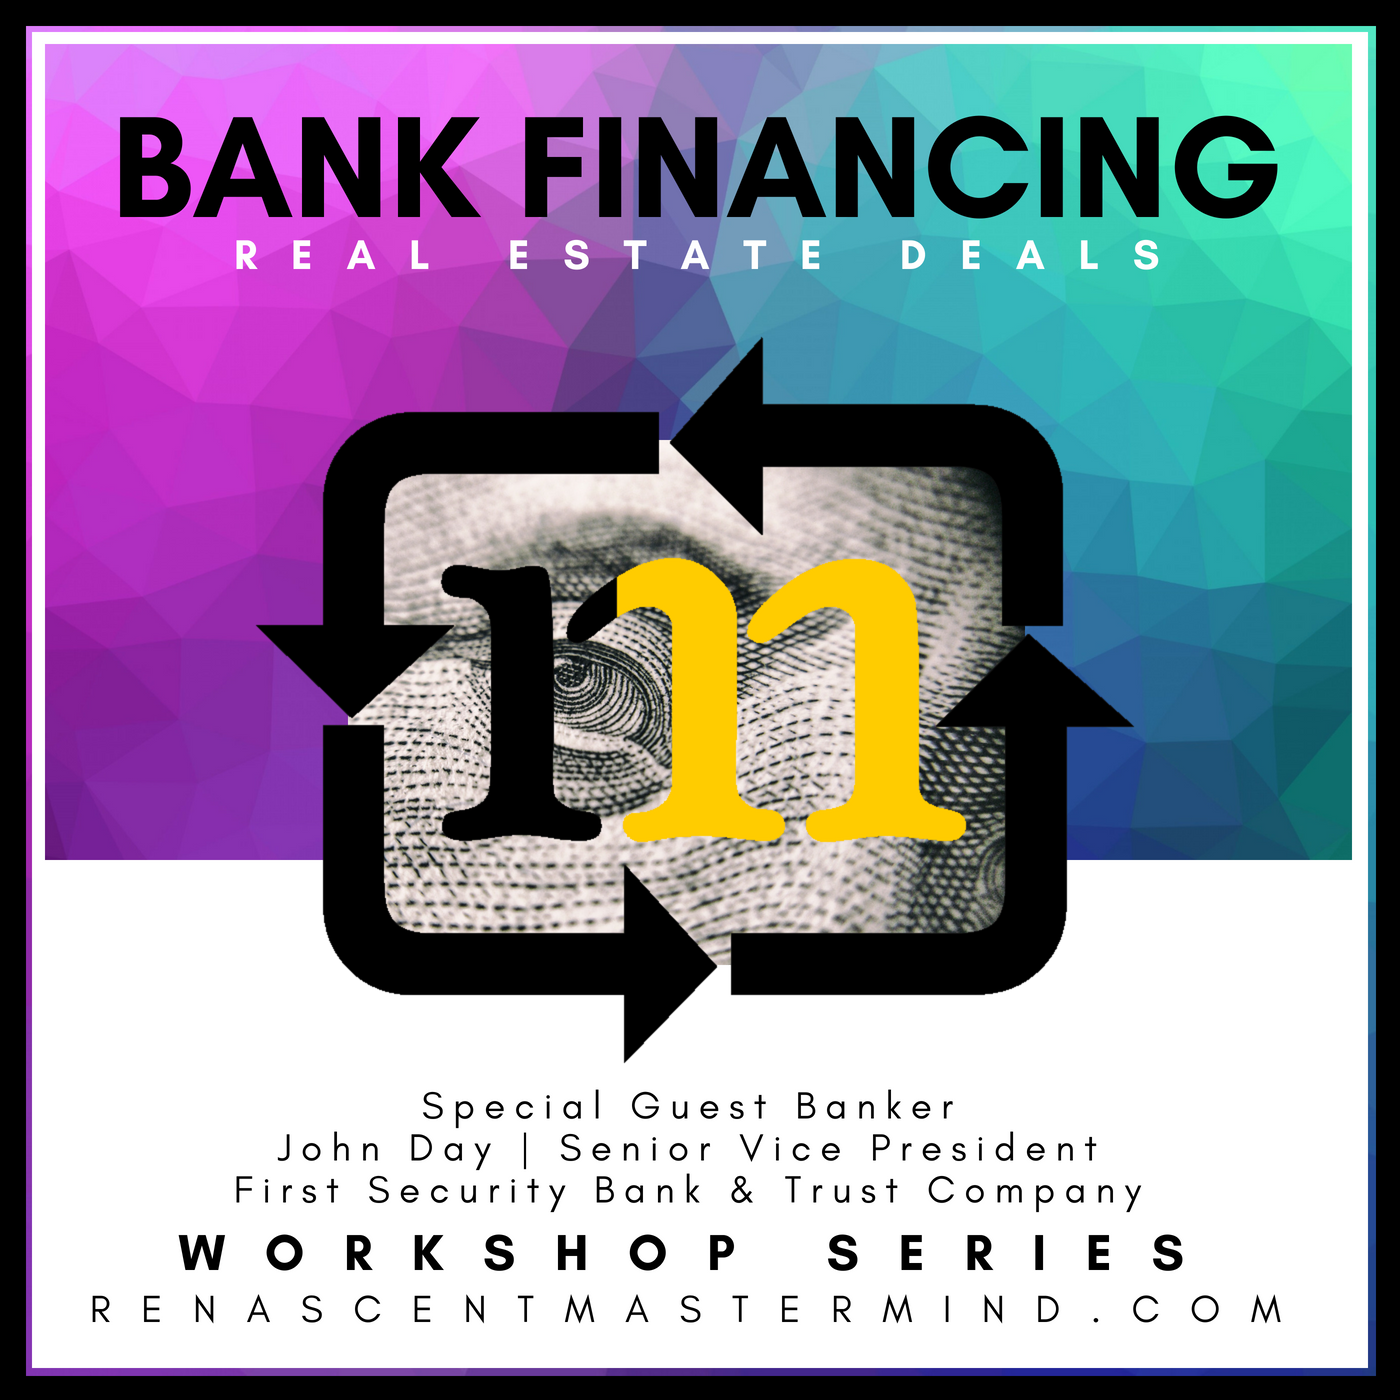 Copy of Bank Financing Real Estate Deals with John Day of First Security Bank & Trust Company | Workshop Series